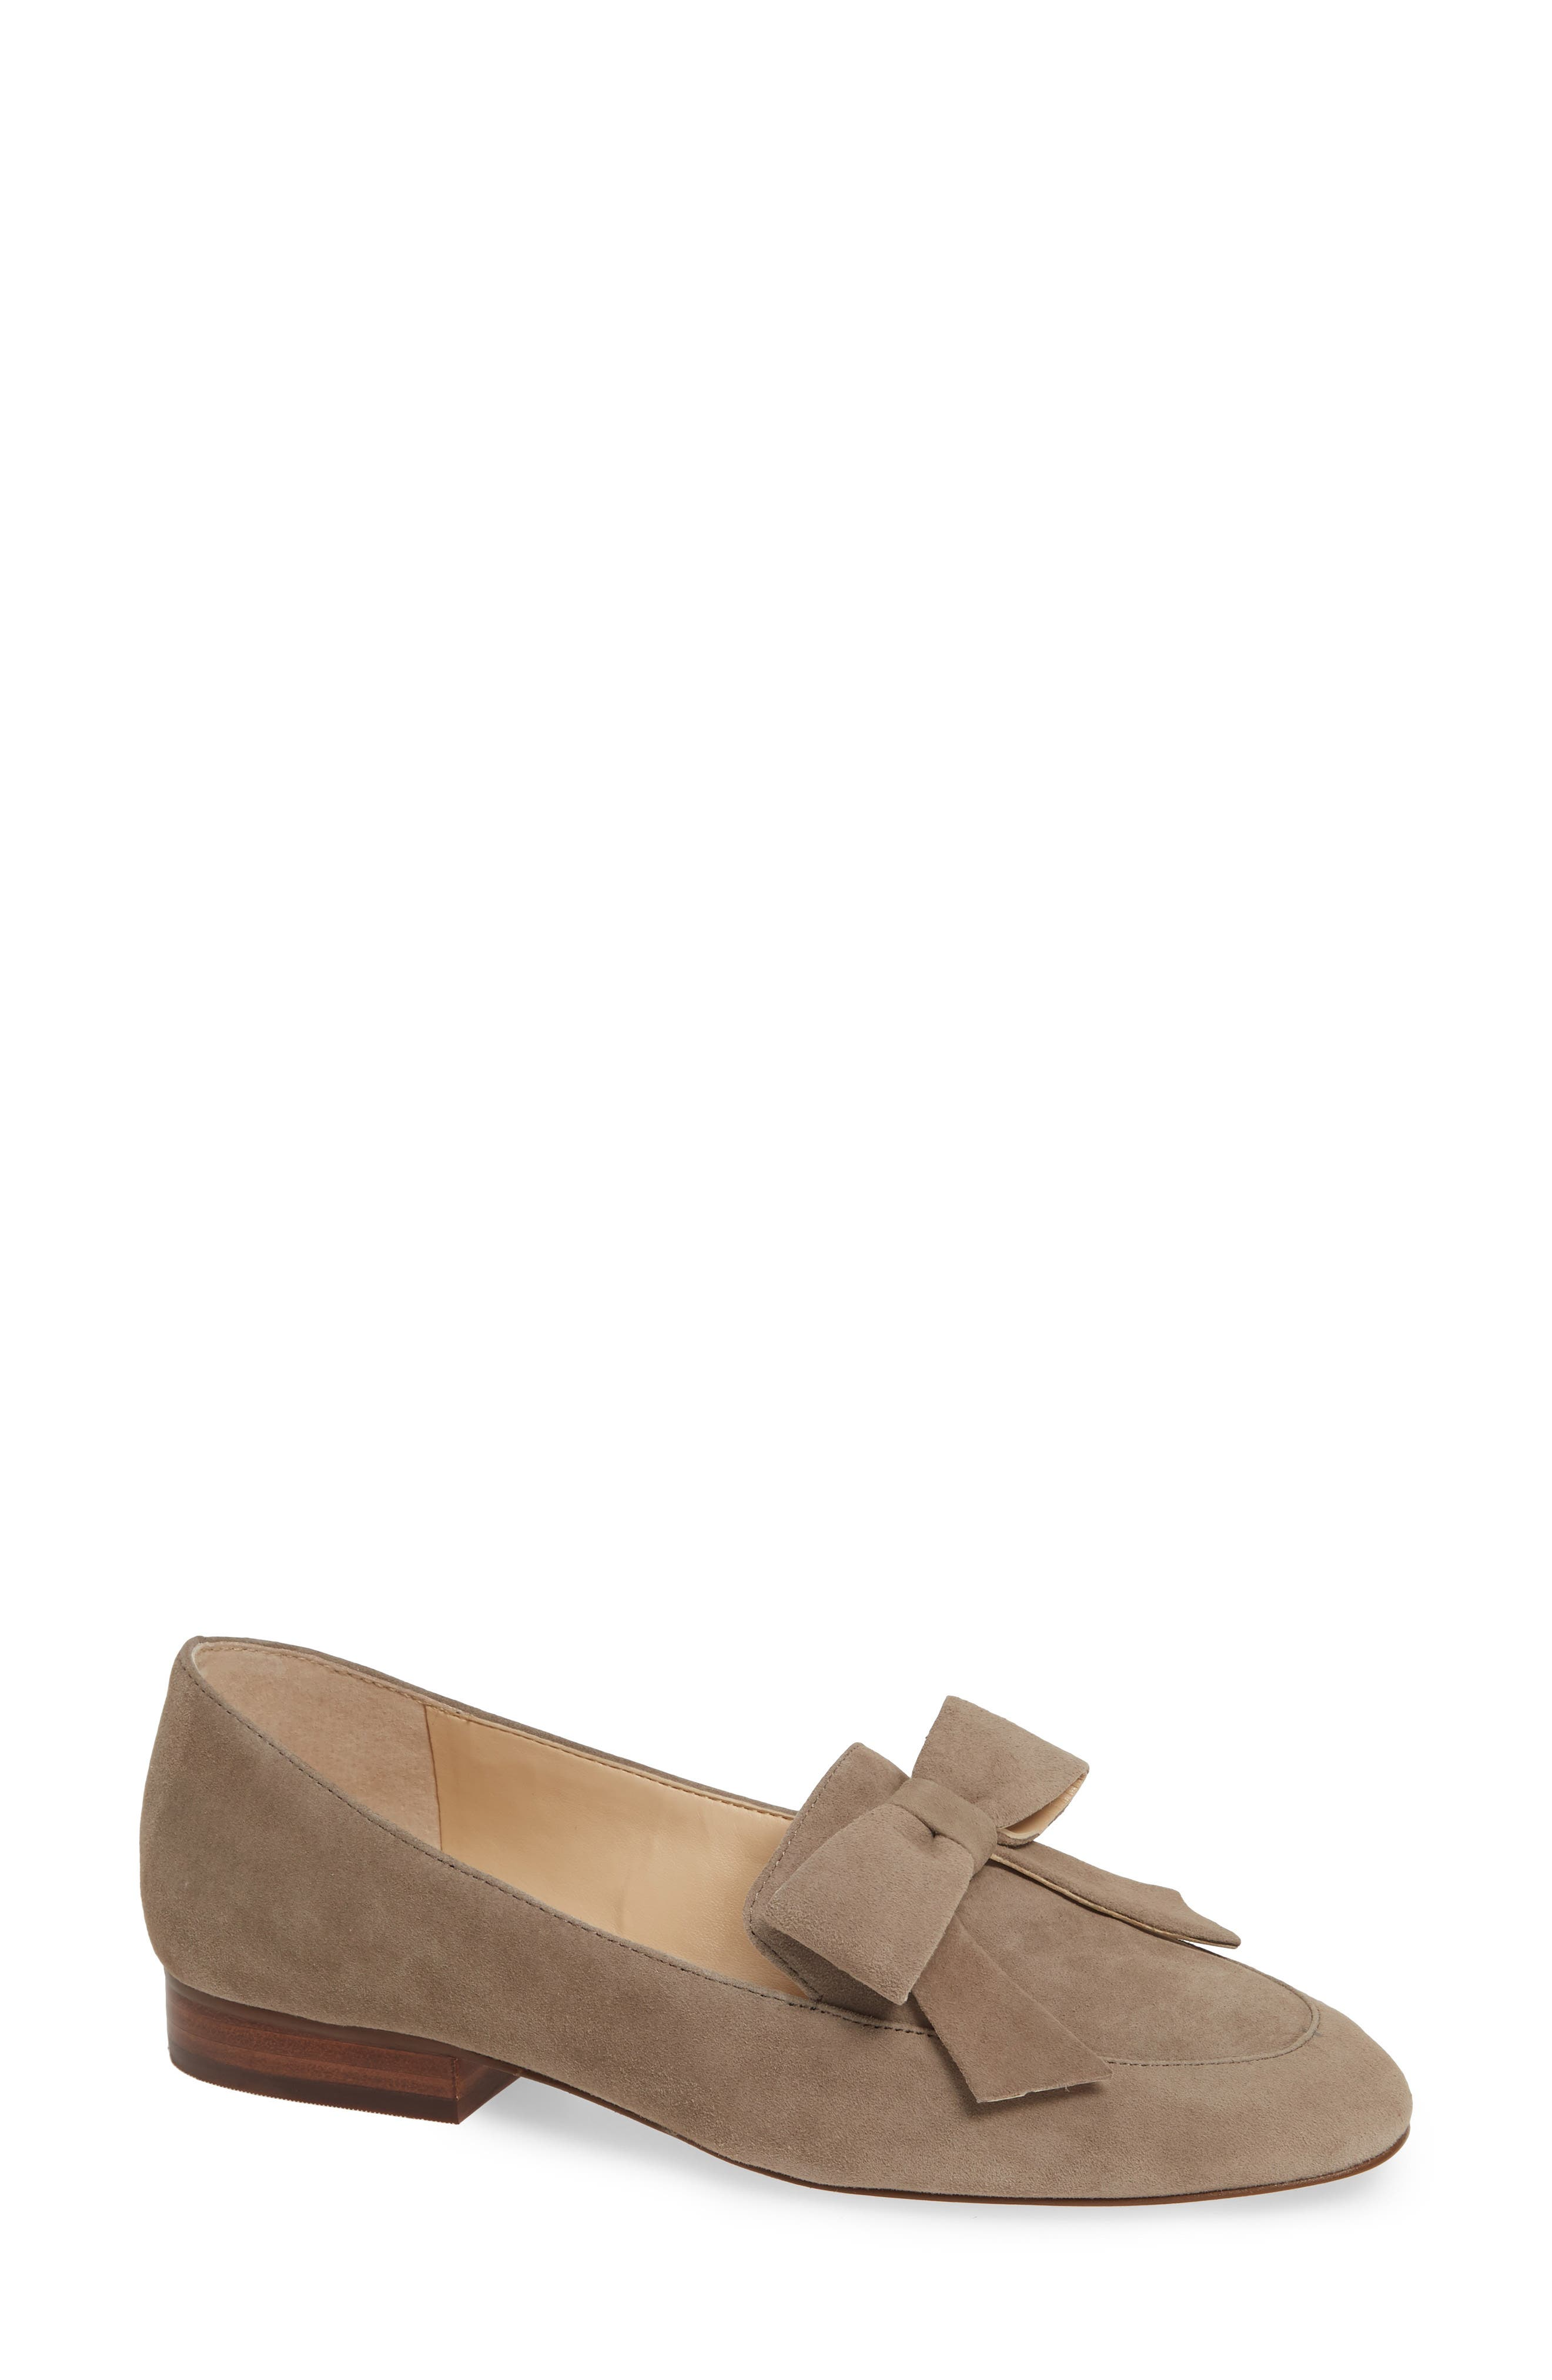 SOLE SOCIETY, Tannse Bow Loafer, Main thumbnail 1, color, MUSHROOM SUEDE